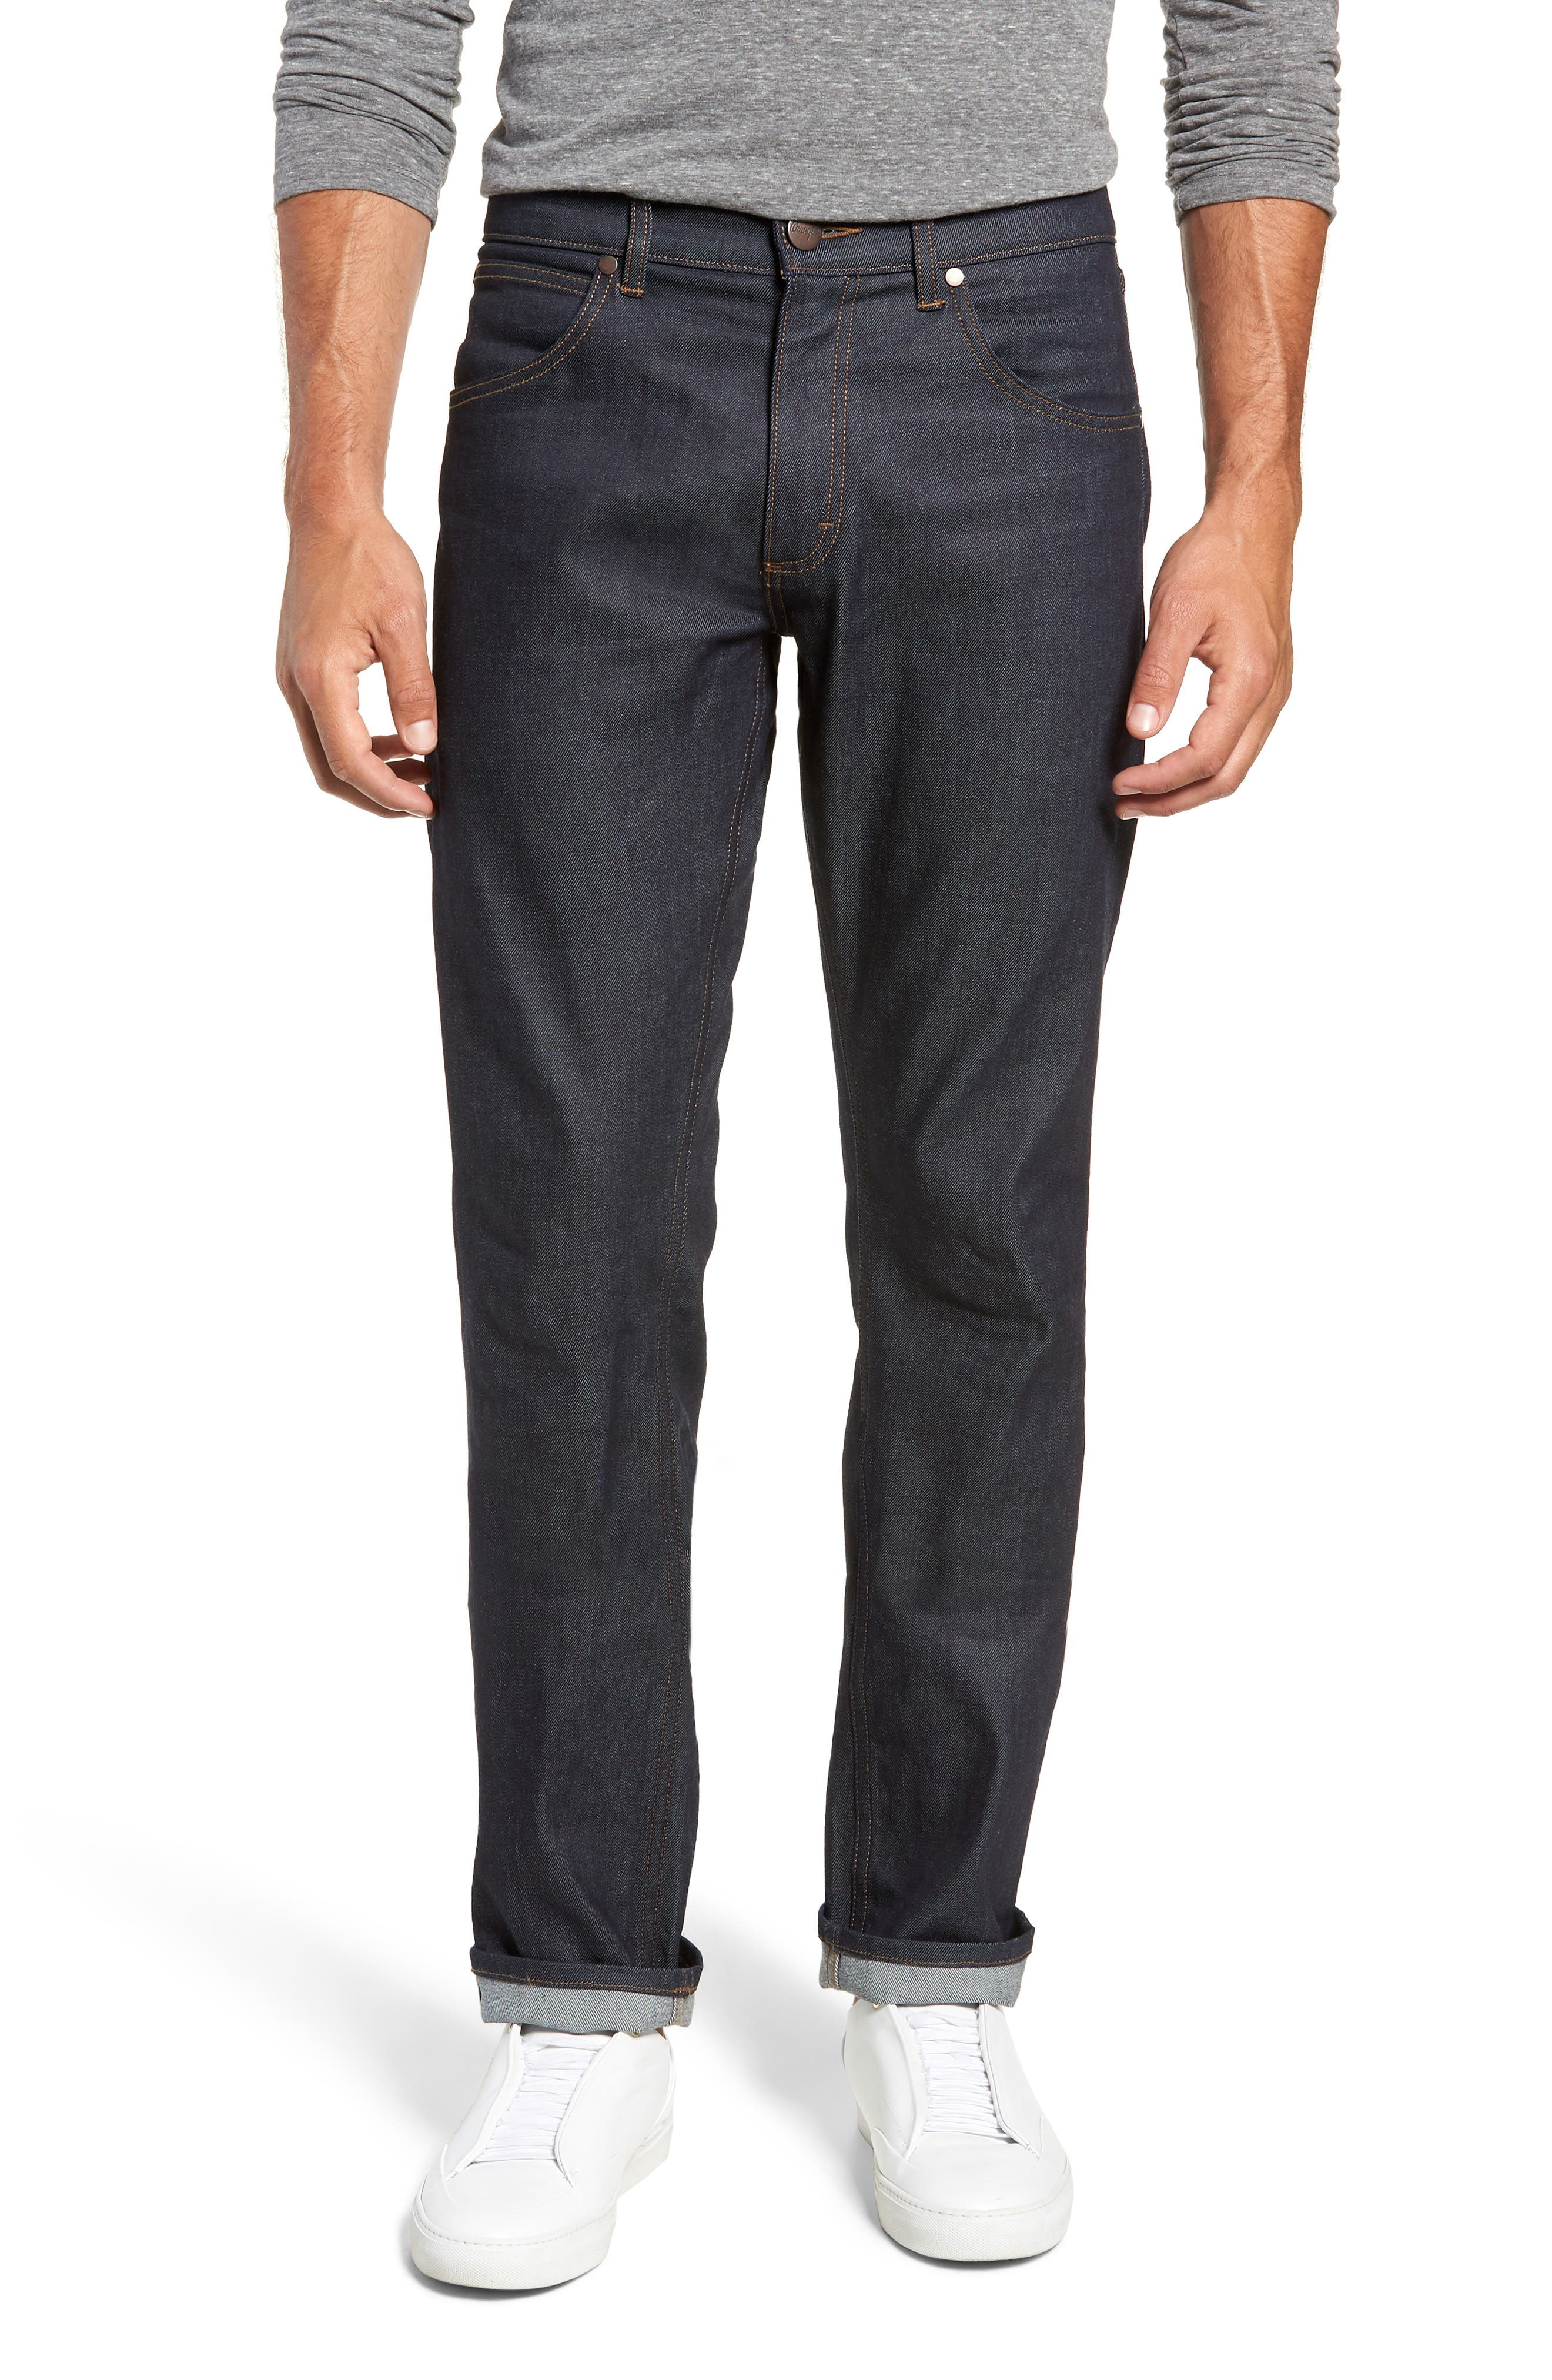 Greensboro Straight Leg Jeans,                             Main thumbnail 1, color,                             472